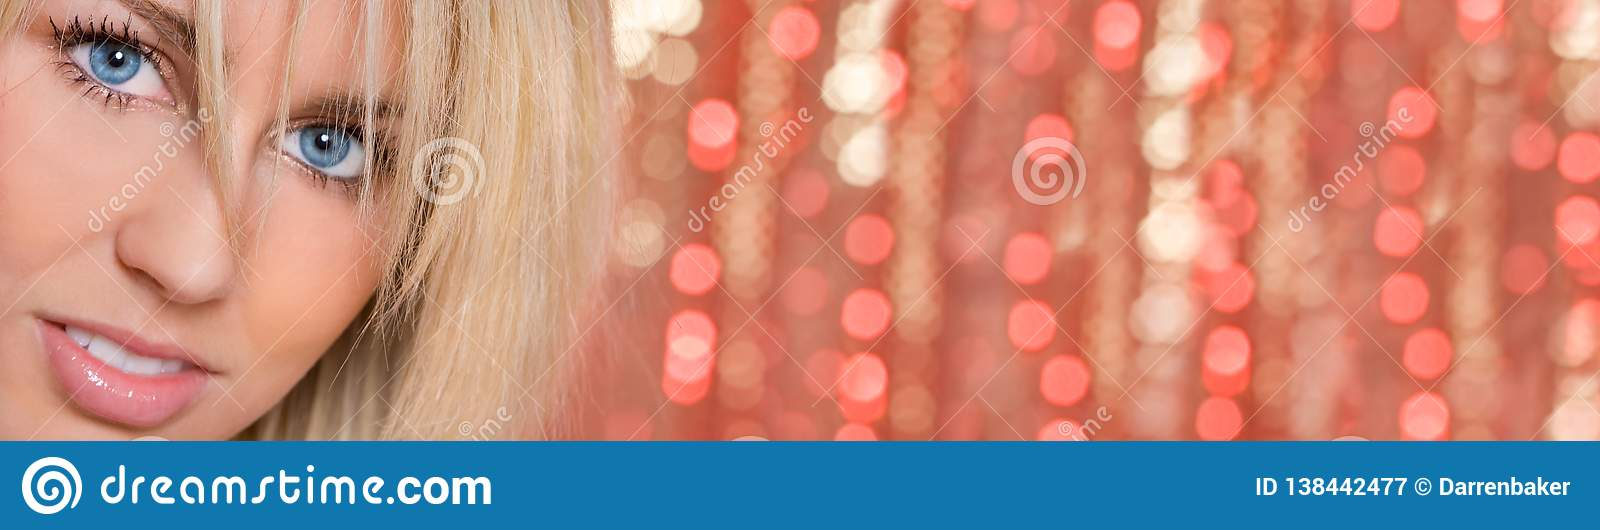 Woman Girl Blue Eyes Bokeh Lights Background Panorama